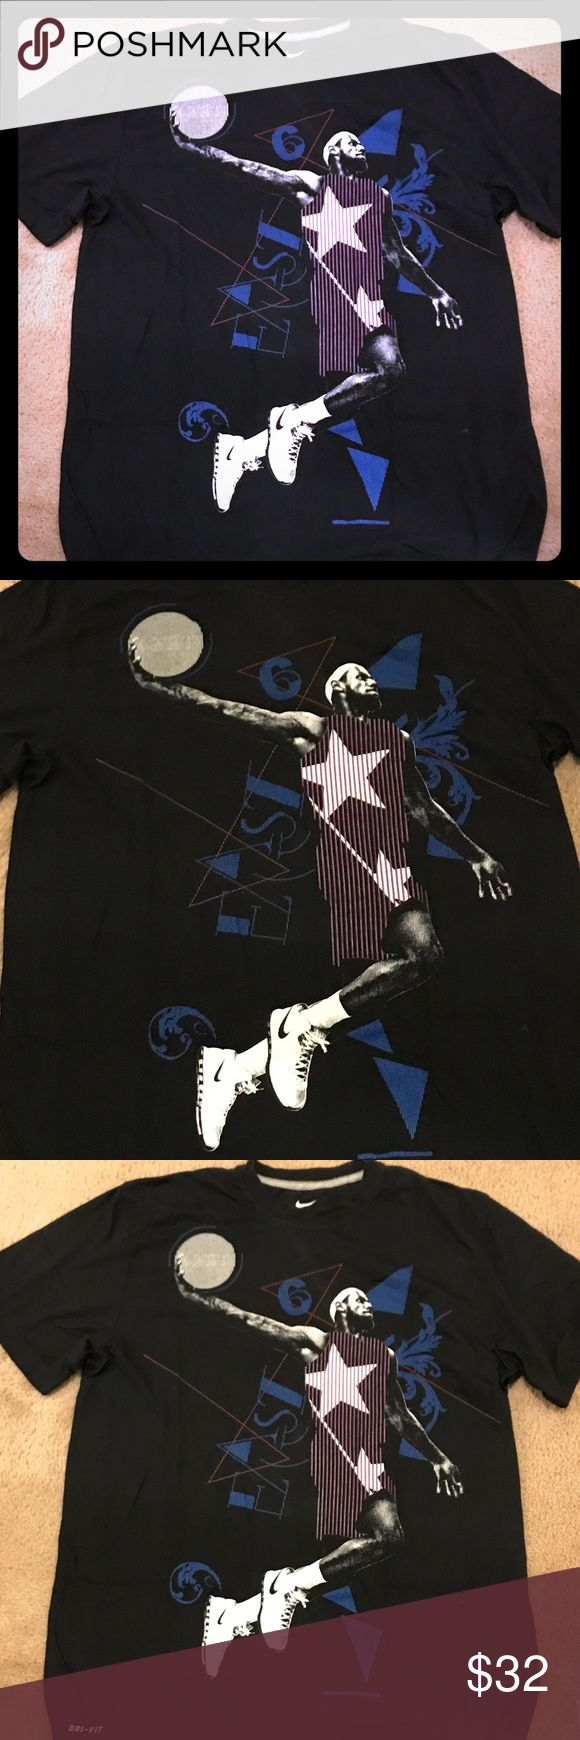 Men's Nike Lebron James shirt NWOT NWOT, men's, Nike dri fit, size large, black, Lebron James T-shirt Nike Shirts Tees - Short Sleeve